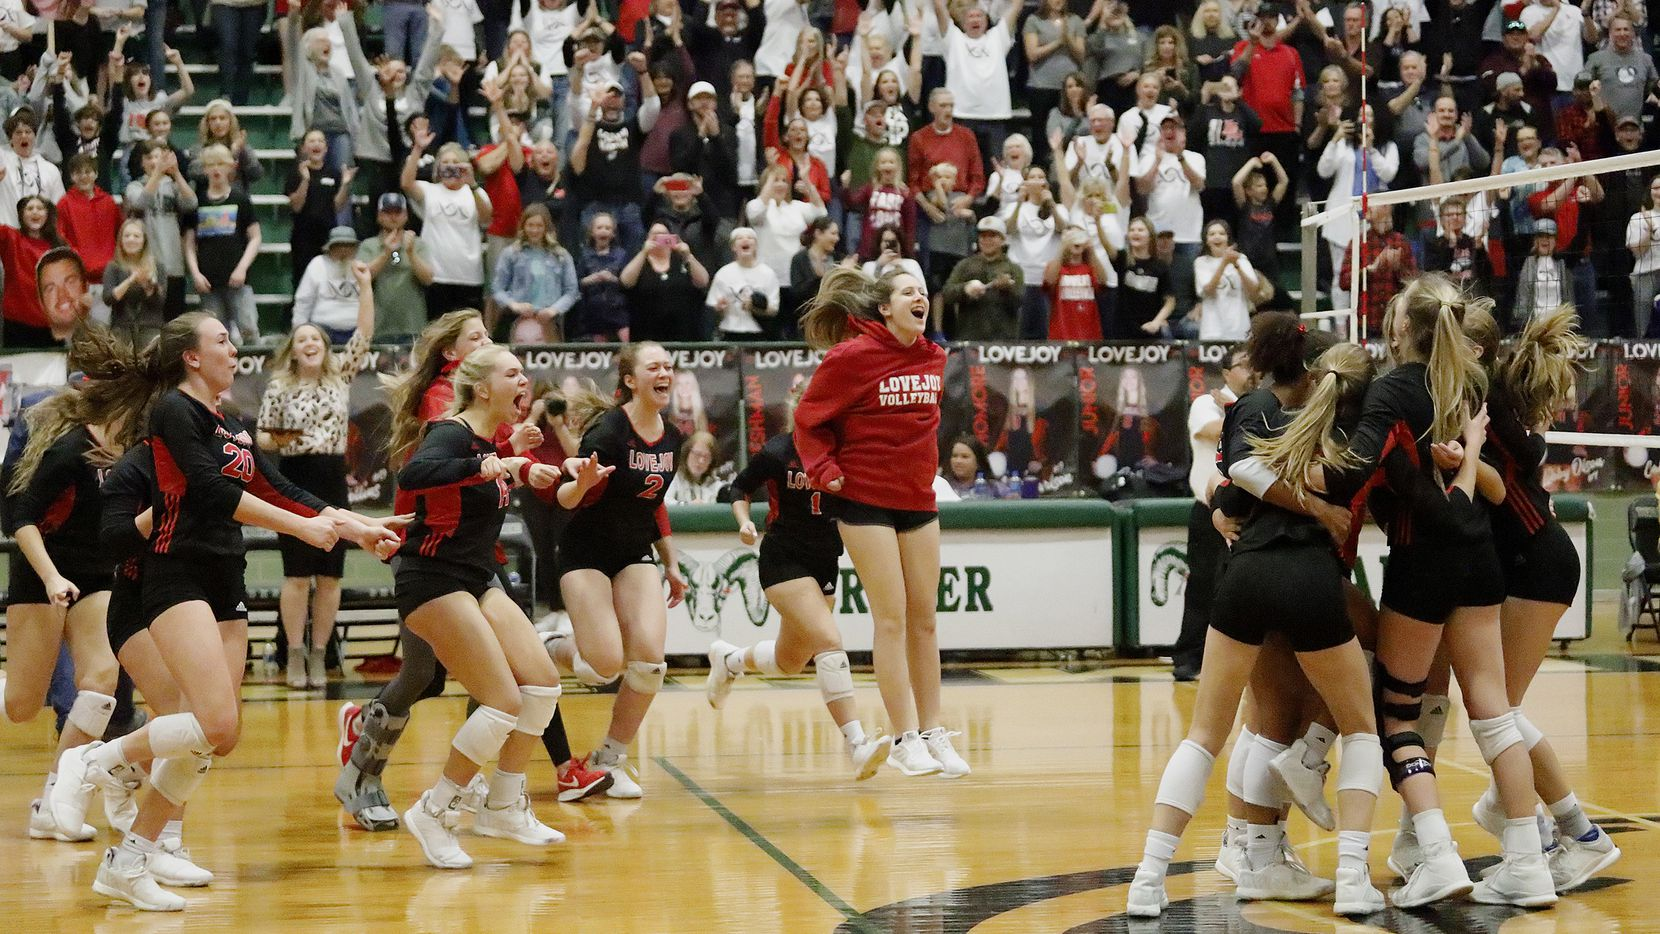 Lovejoy olayers celebrate after the final point of Saturday's 25-20, 25-14, 25-17 win over Highland Park in the Class 5A Region II championship match at Richardson Berkner High School. (Stewart F. House/Special Contributor)